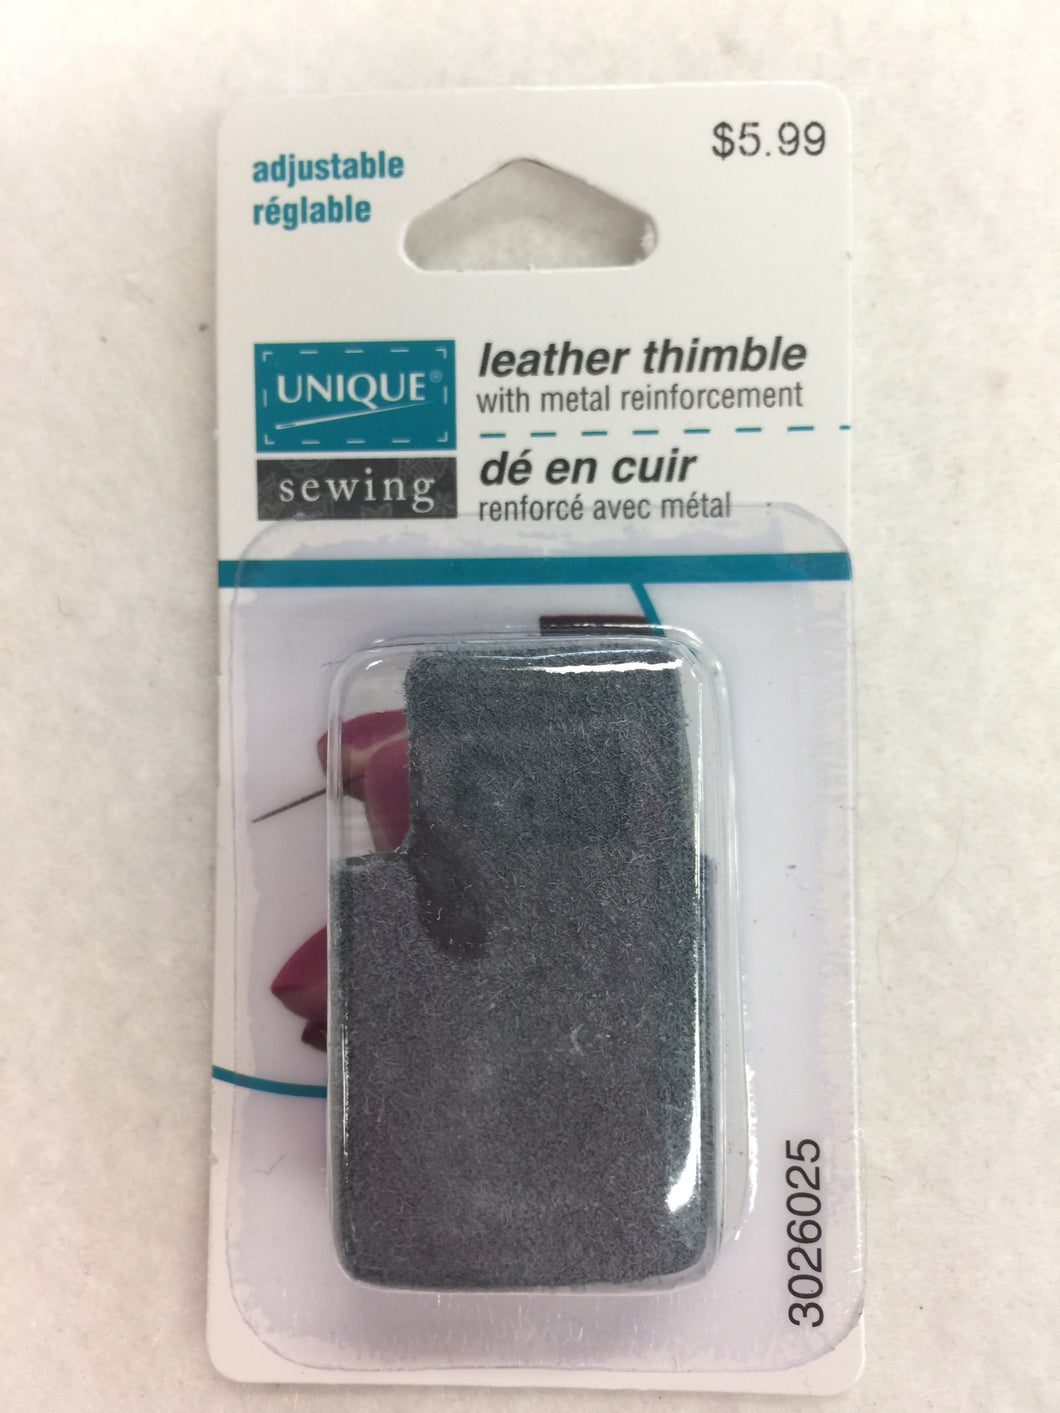 Leather Thimble with metal reinforcement